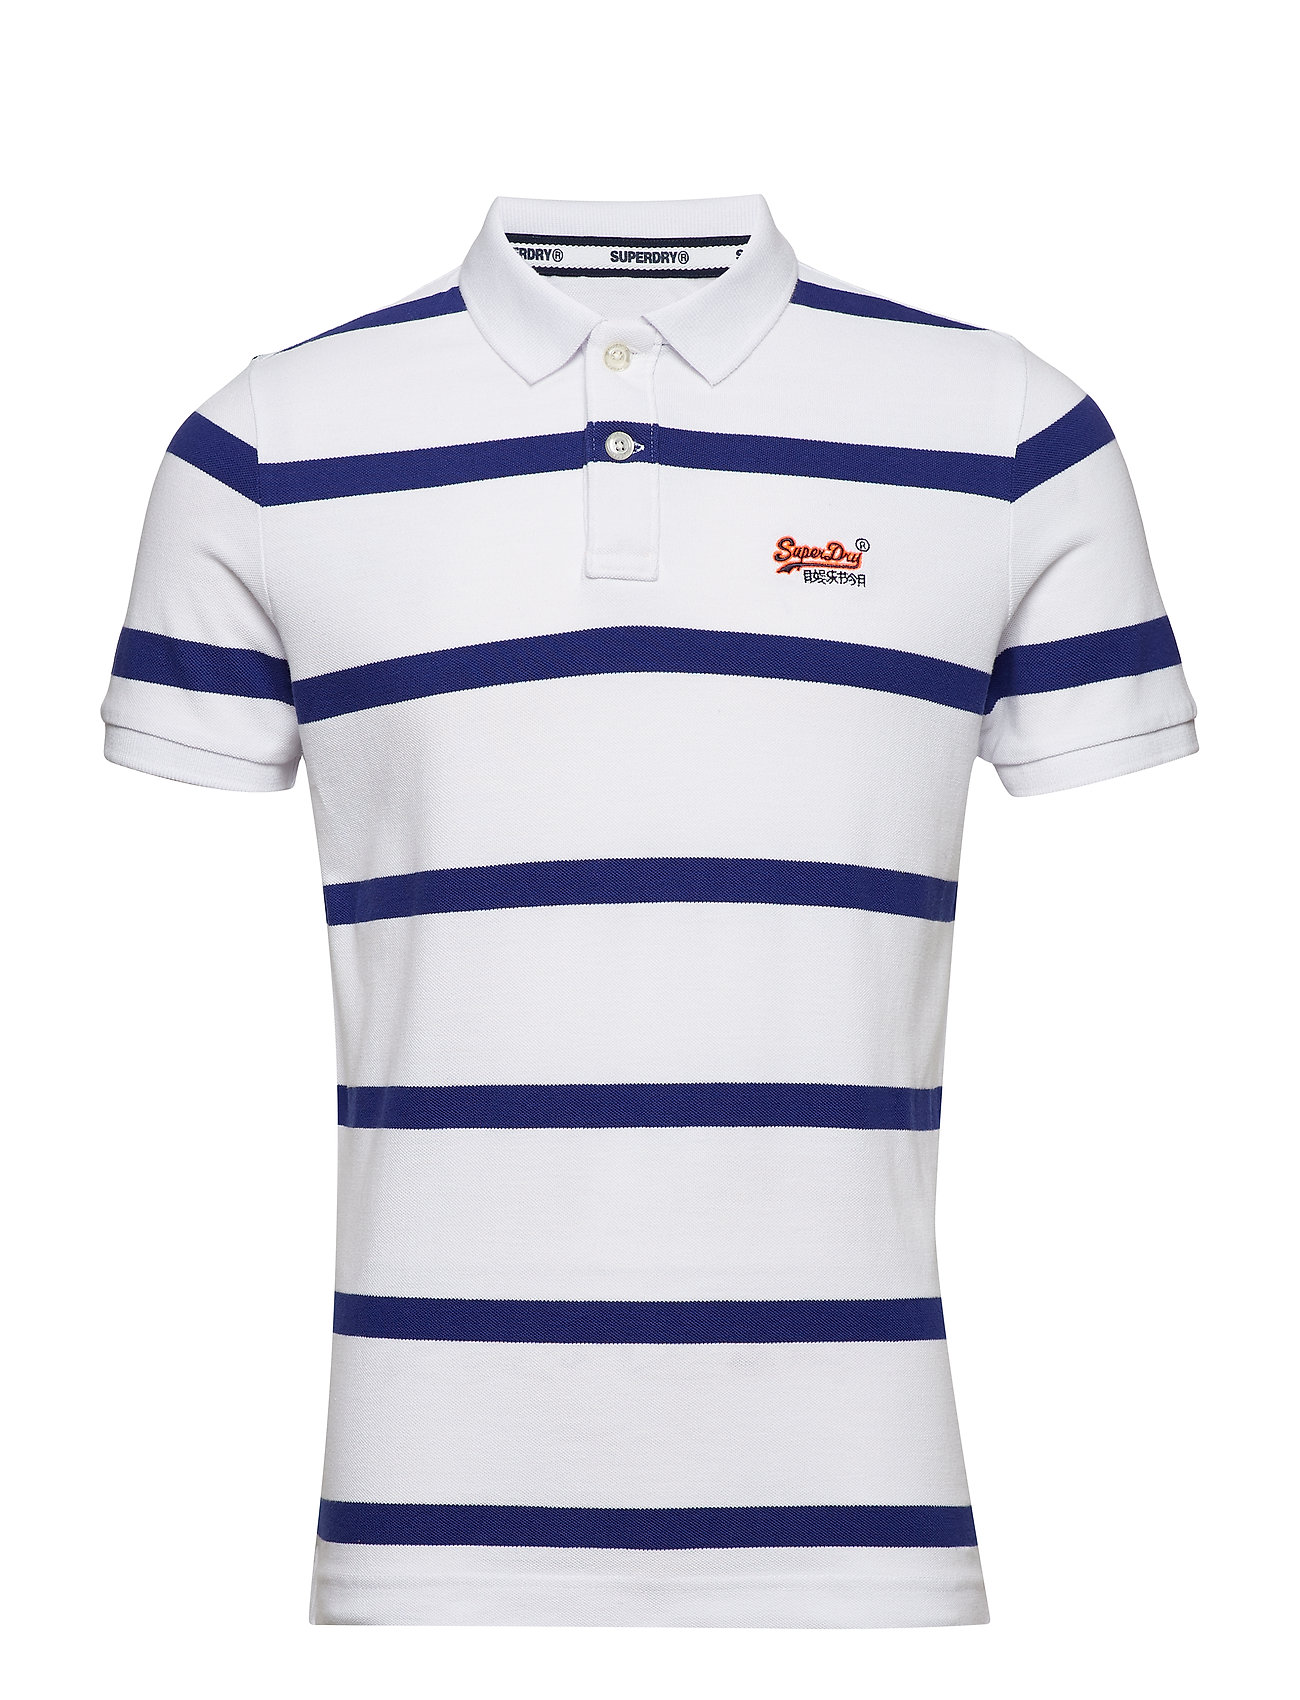 Superdry BEACH VOLLEYBALL POLO - OPTIC/COBALT